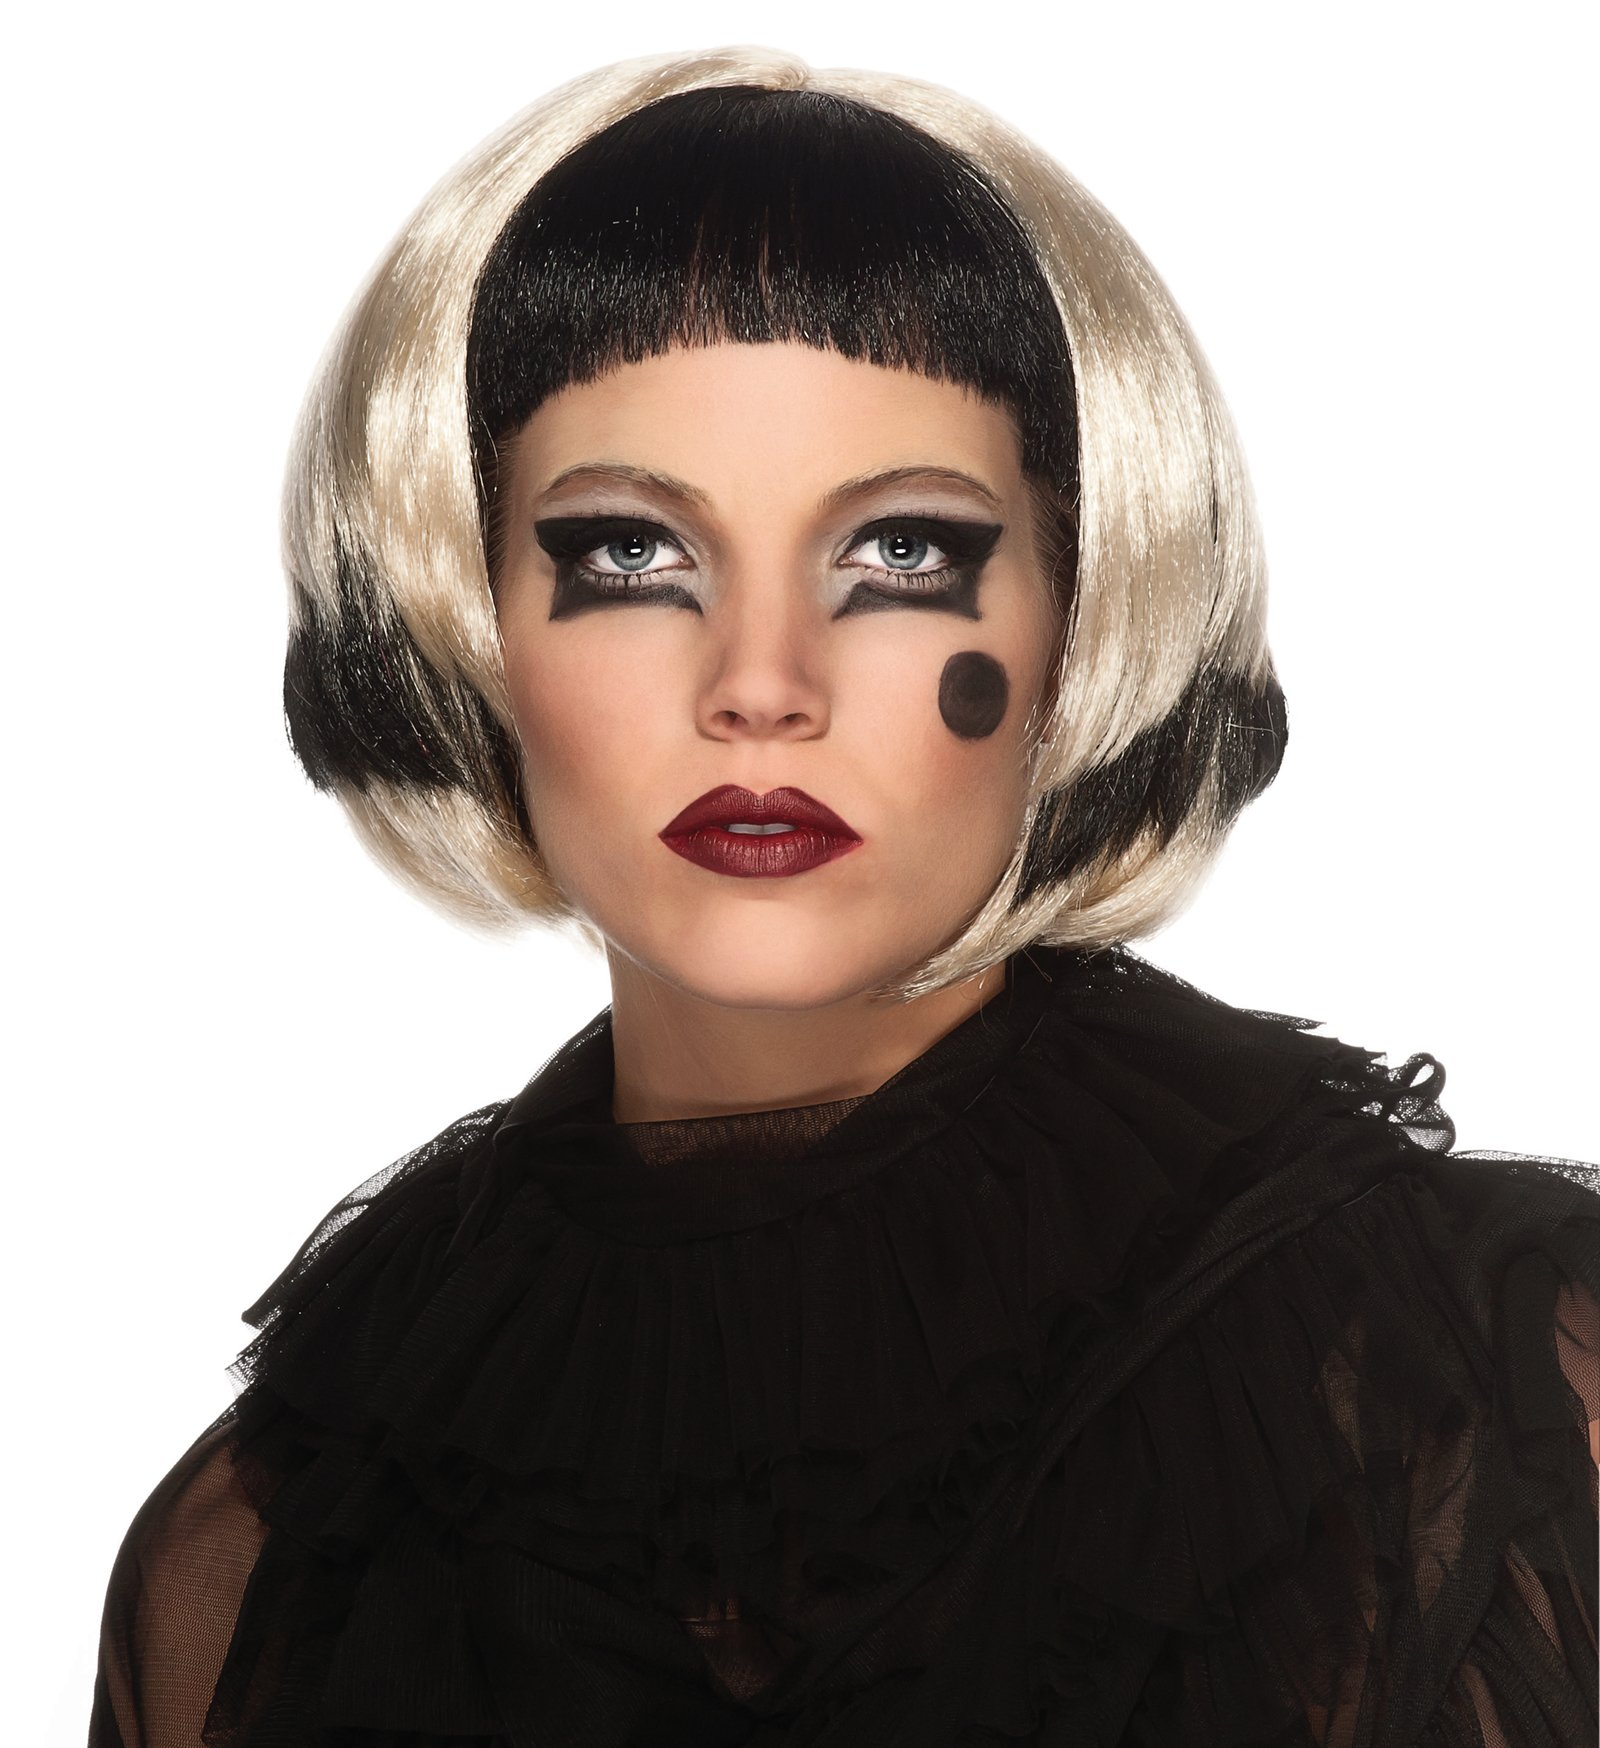 Lady Gaga Black/Blonde Wig (Adult)